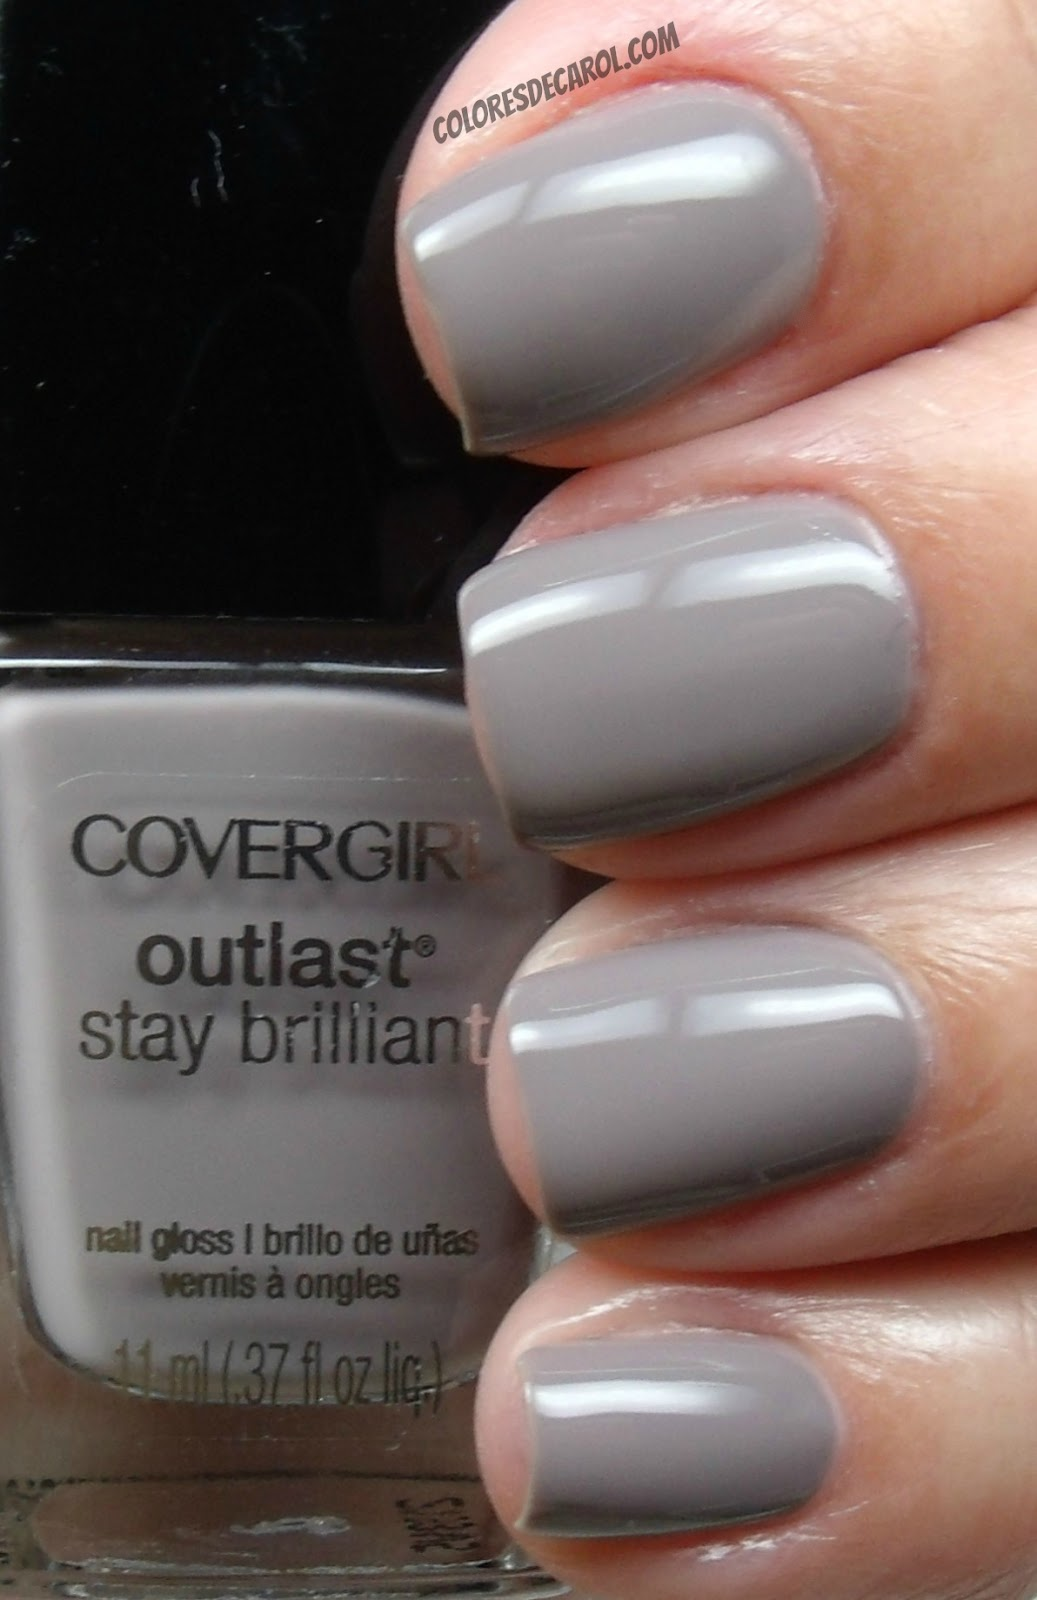 Colores de Carol: COVERGIRL Outlast Stay Brilliant, Swatches and Review